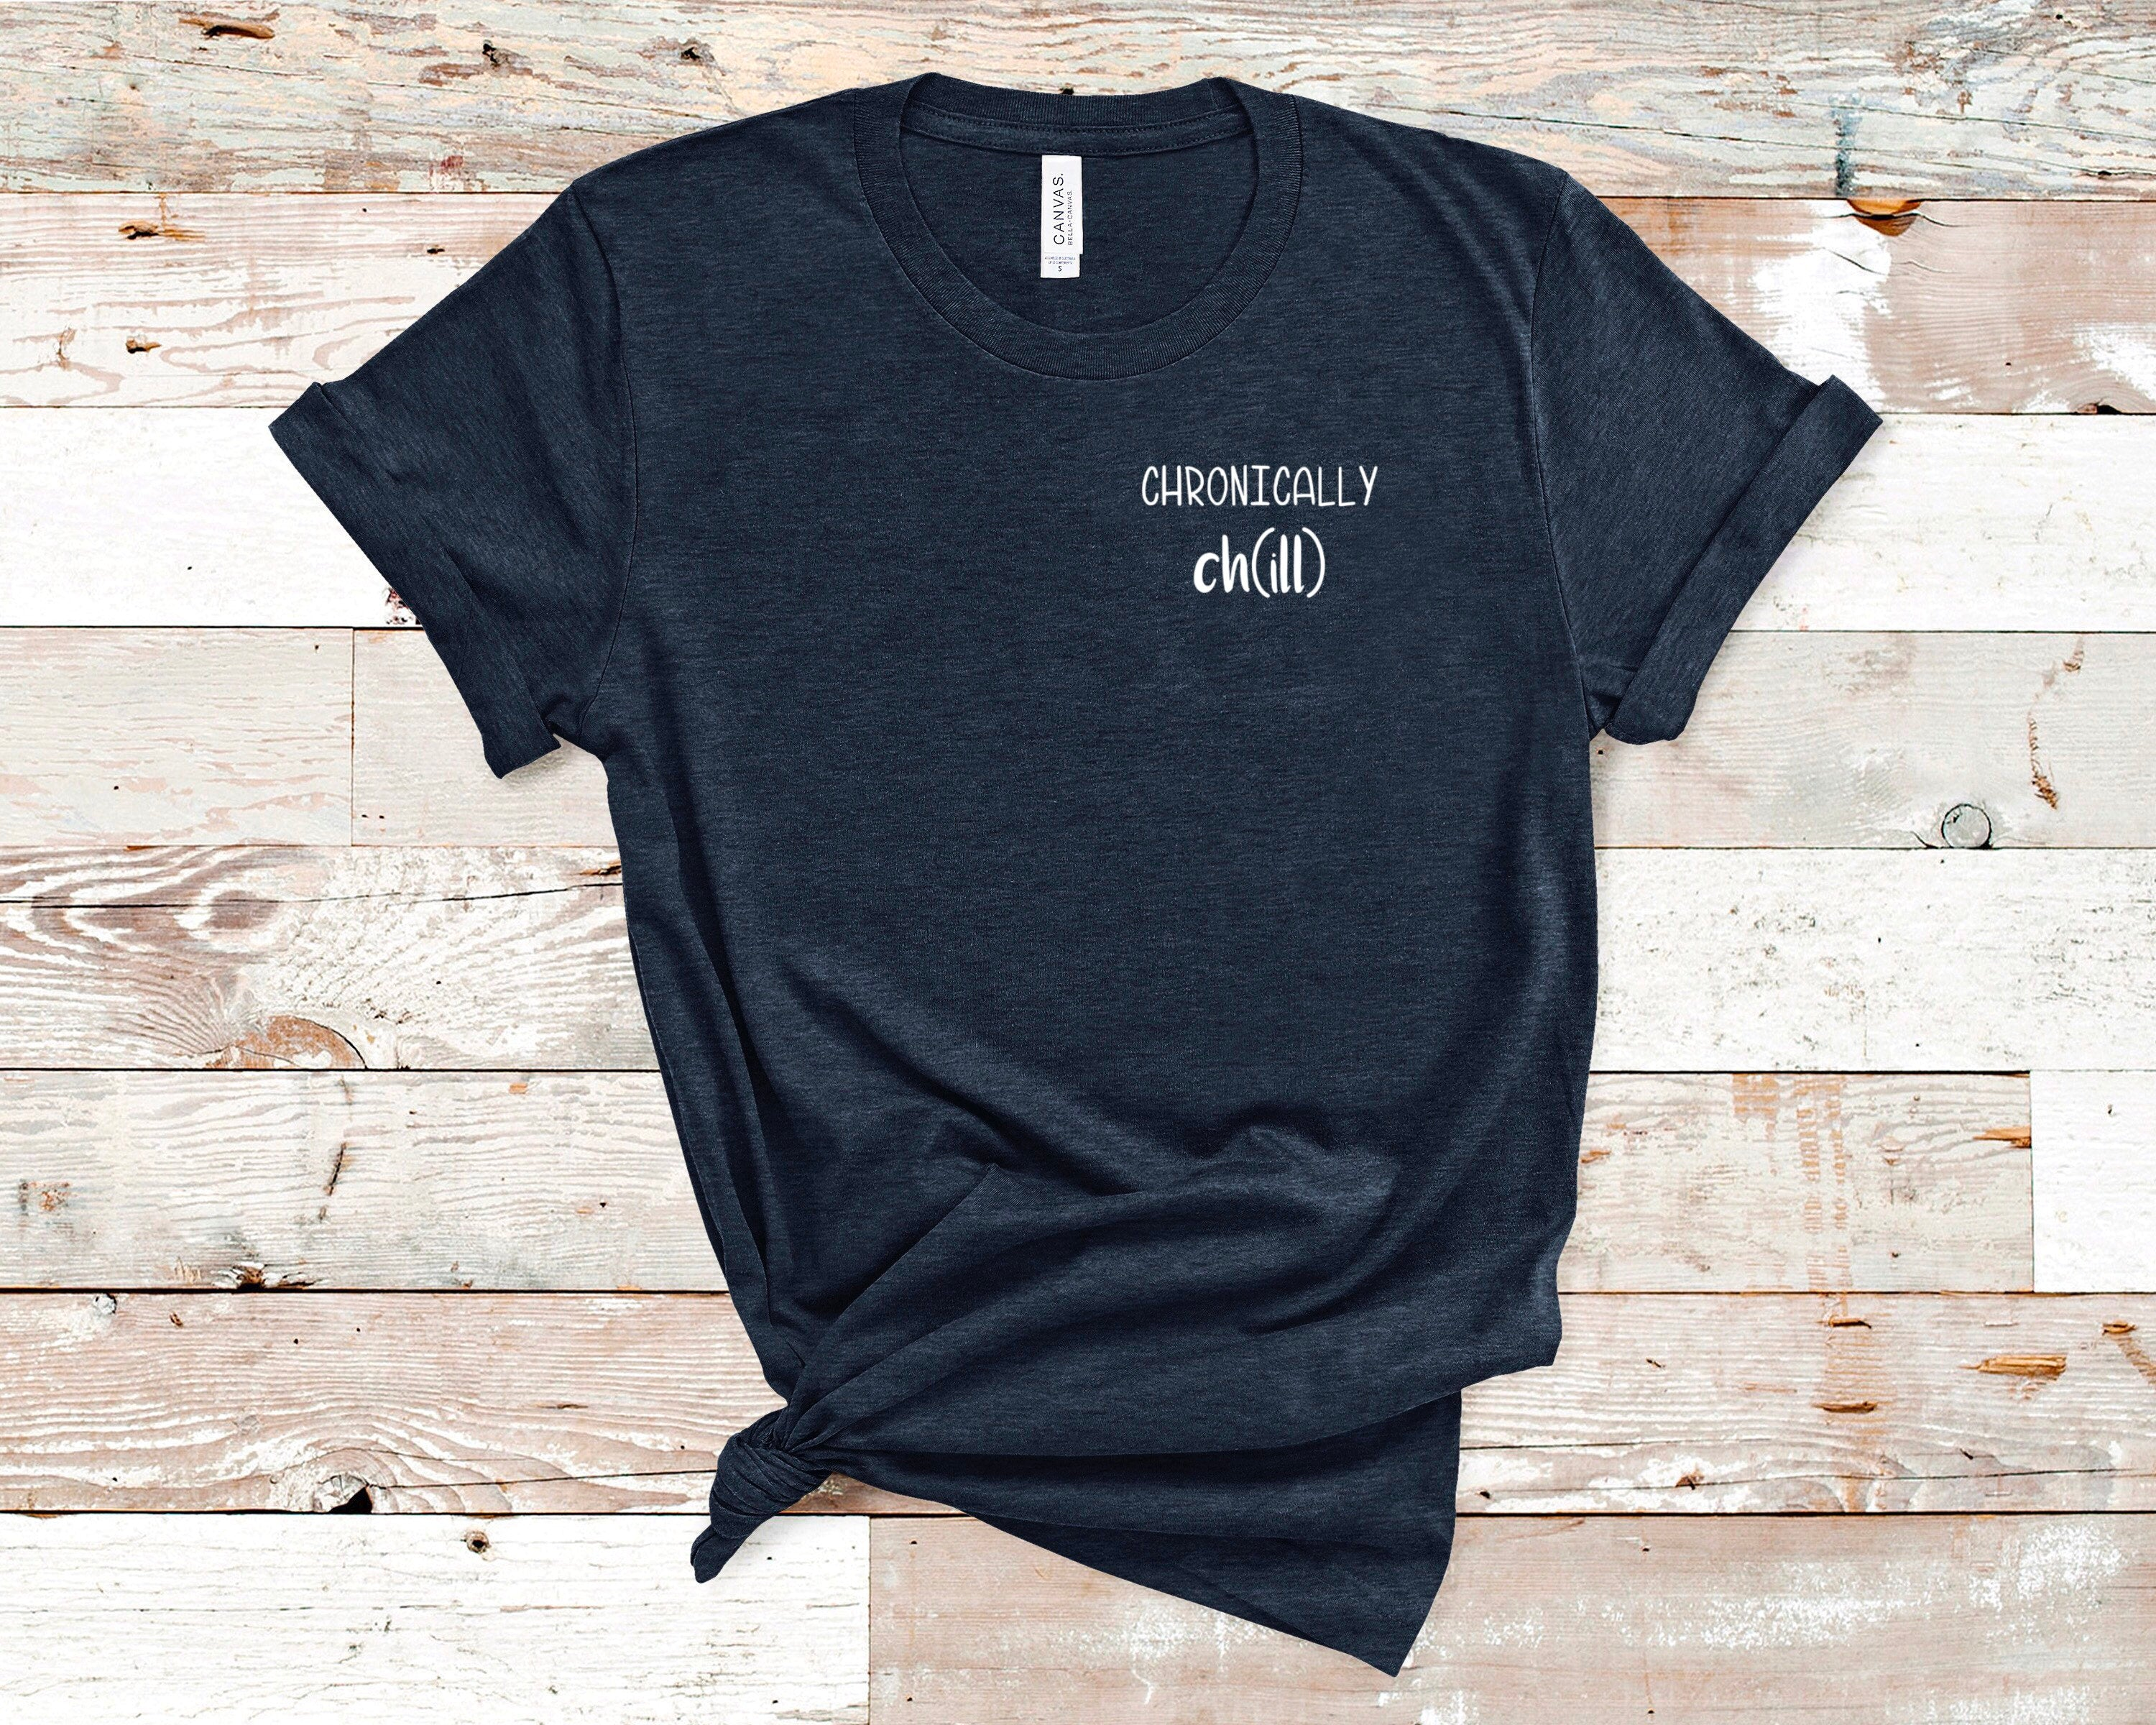 Chronically Chill T-Shirt